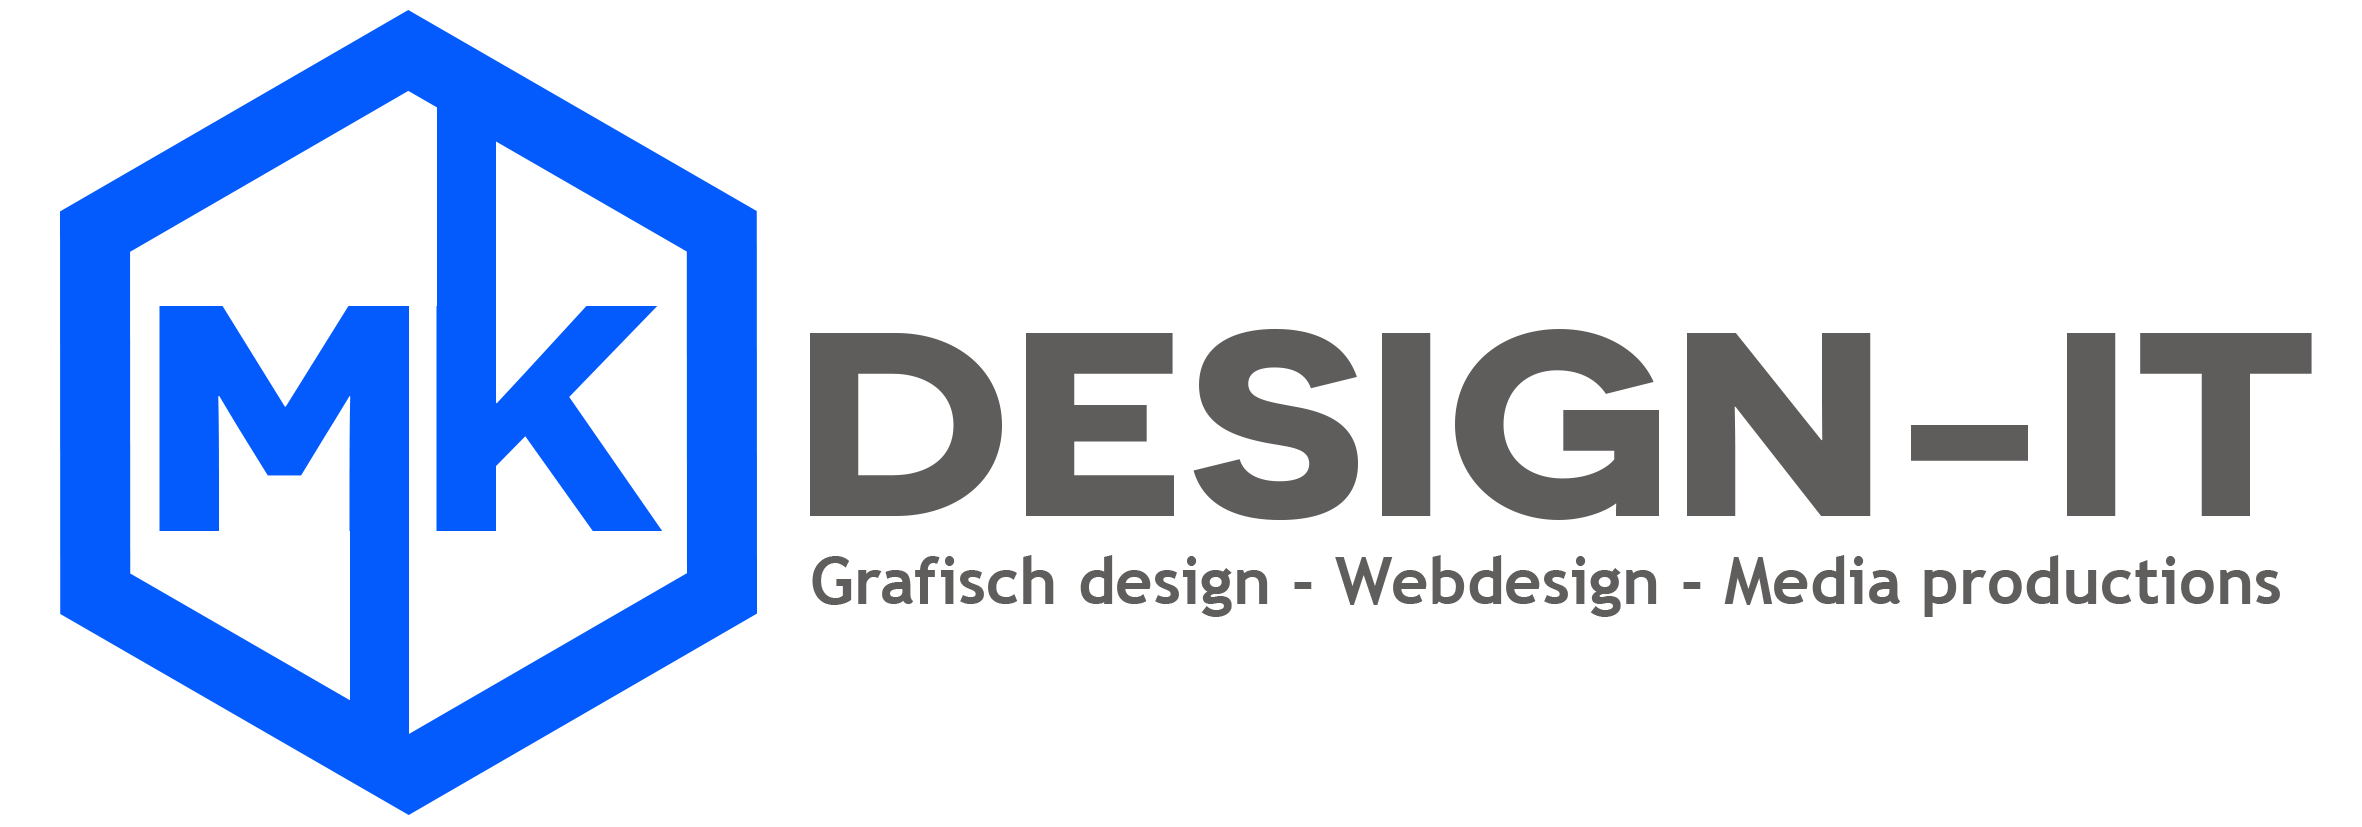 logo mkdesign it